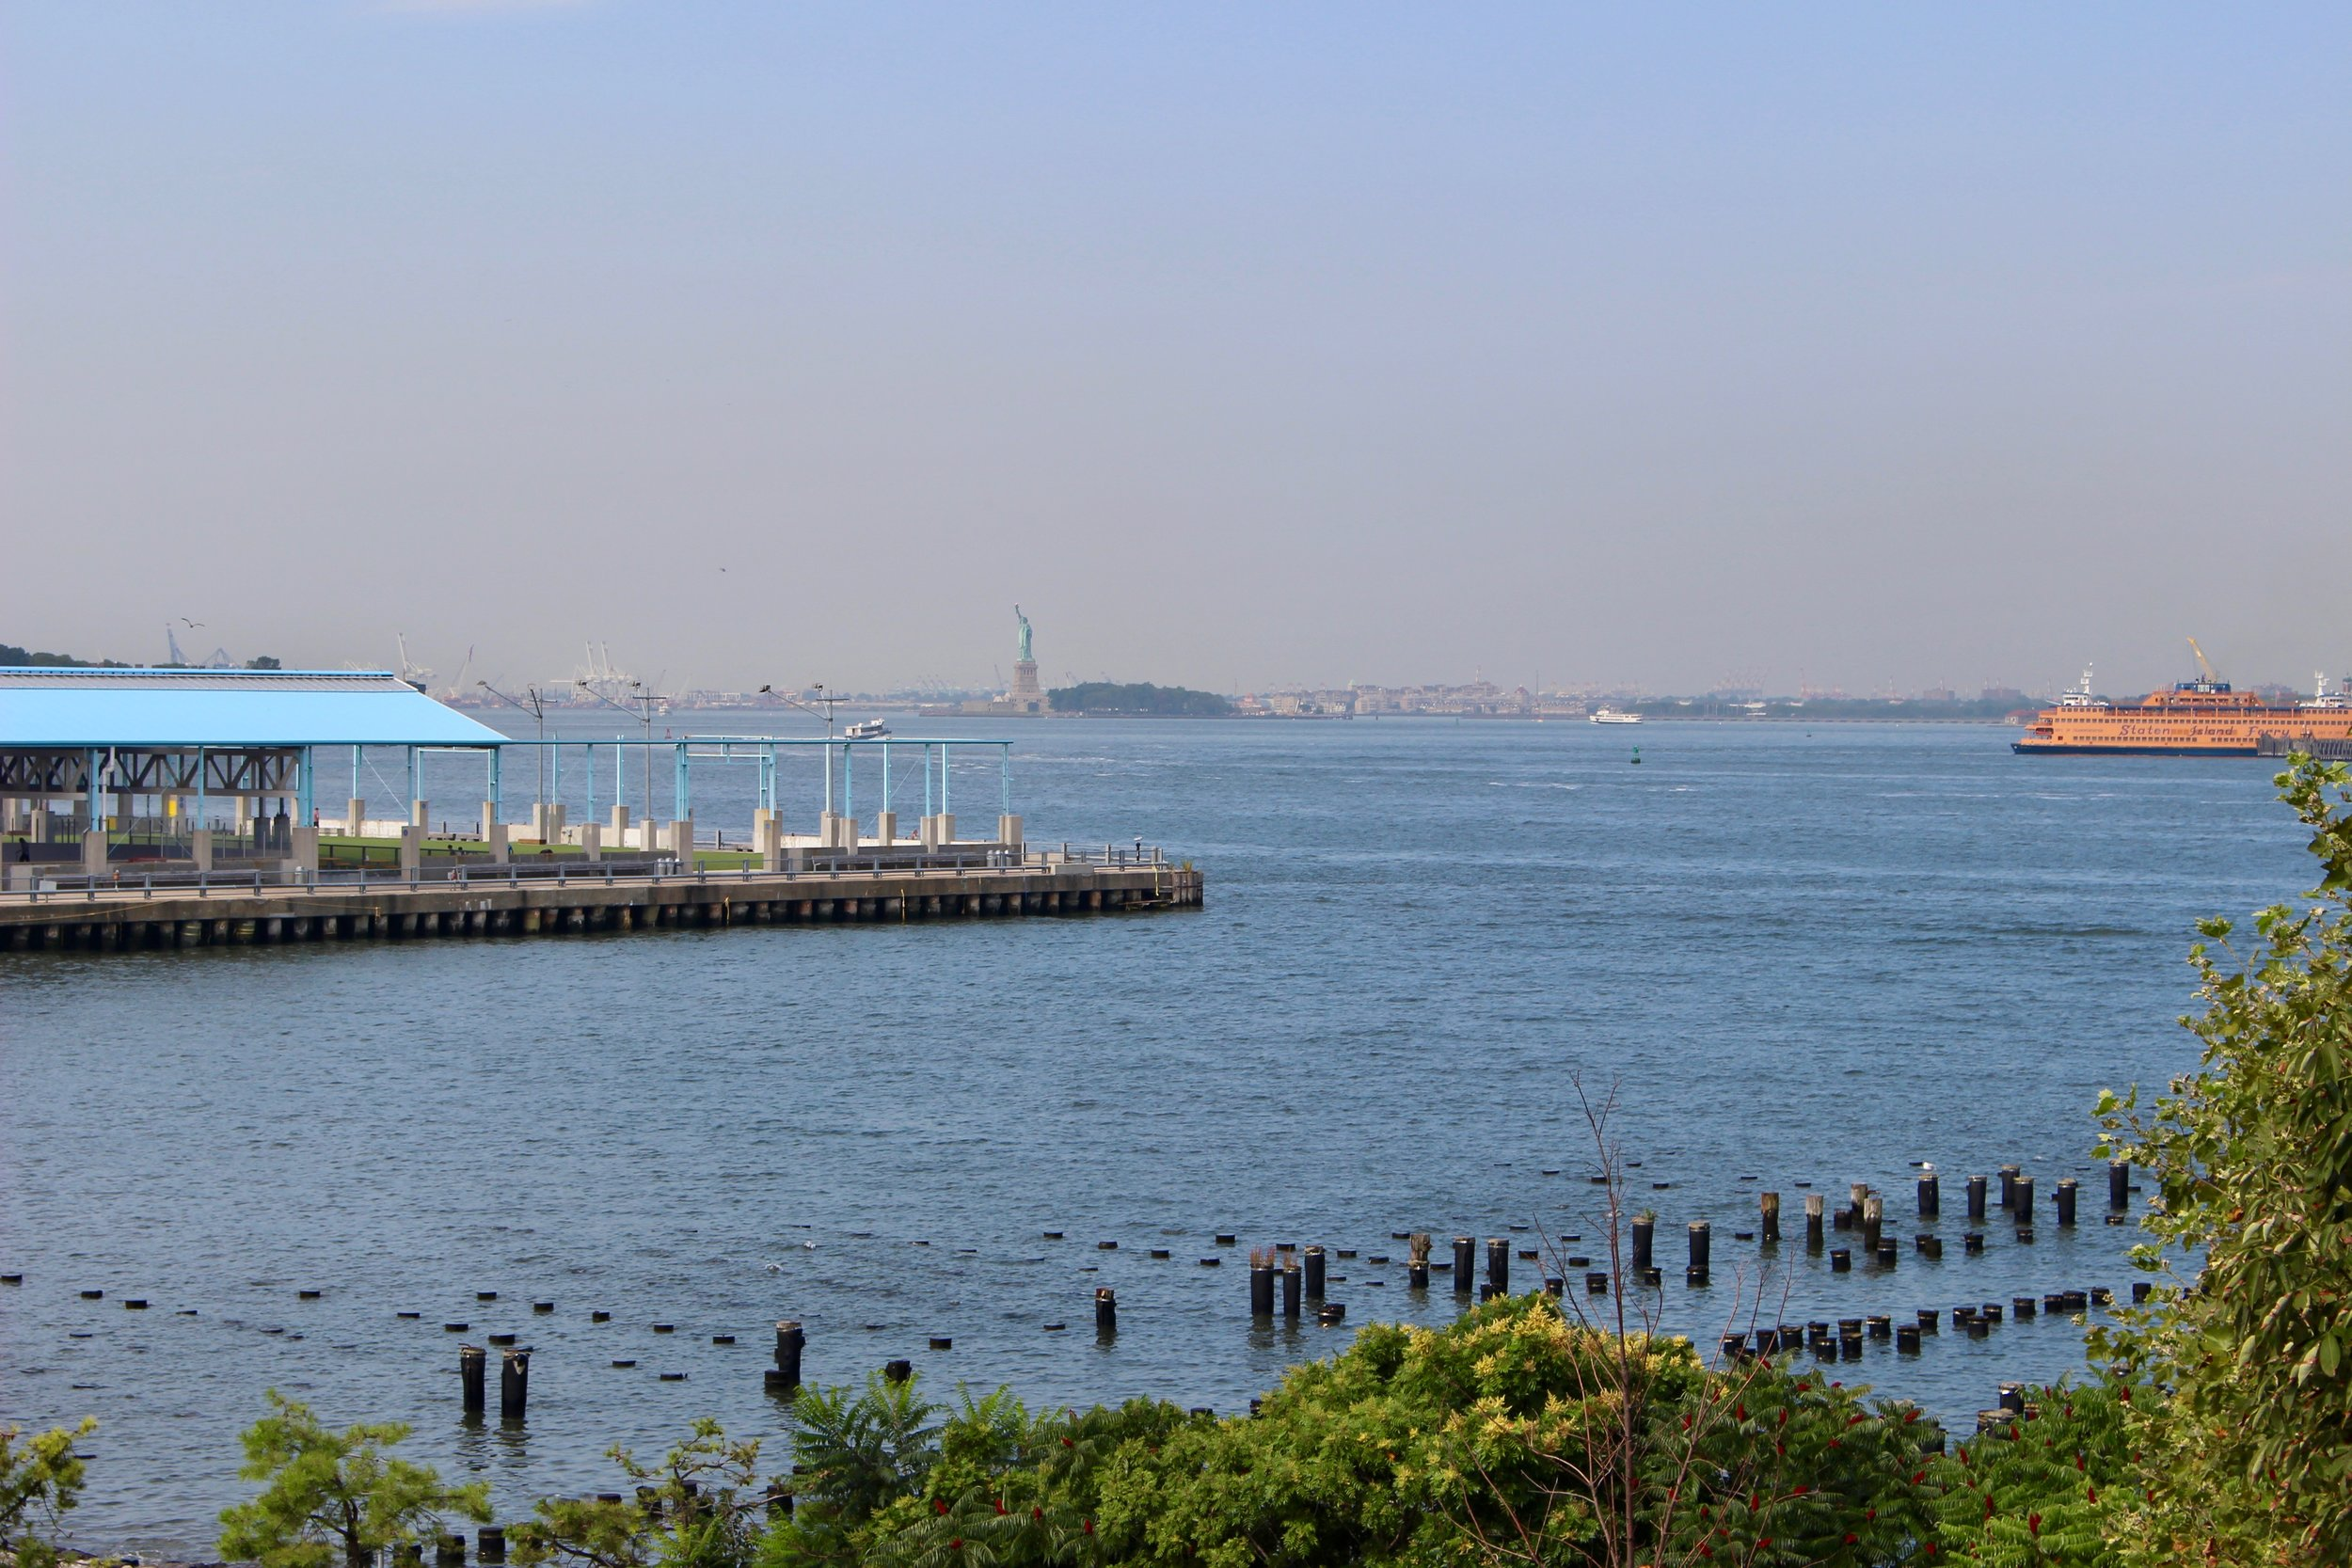 """Reaching the end of the footbridge and stepping out onto the path, here is the view. Note the Staten Island Ferry making its way into the Harbor and the Statue of Liberty.It is always breath taking, no matter how many times you approach this """"vista."""""""